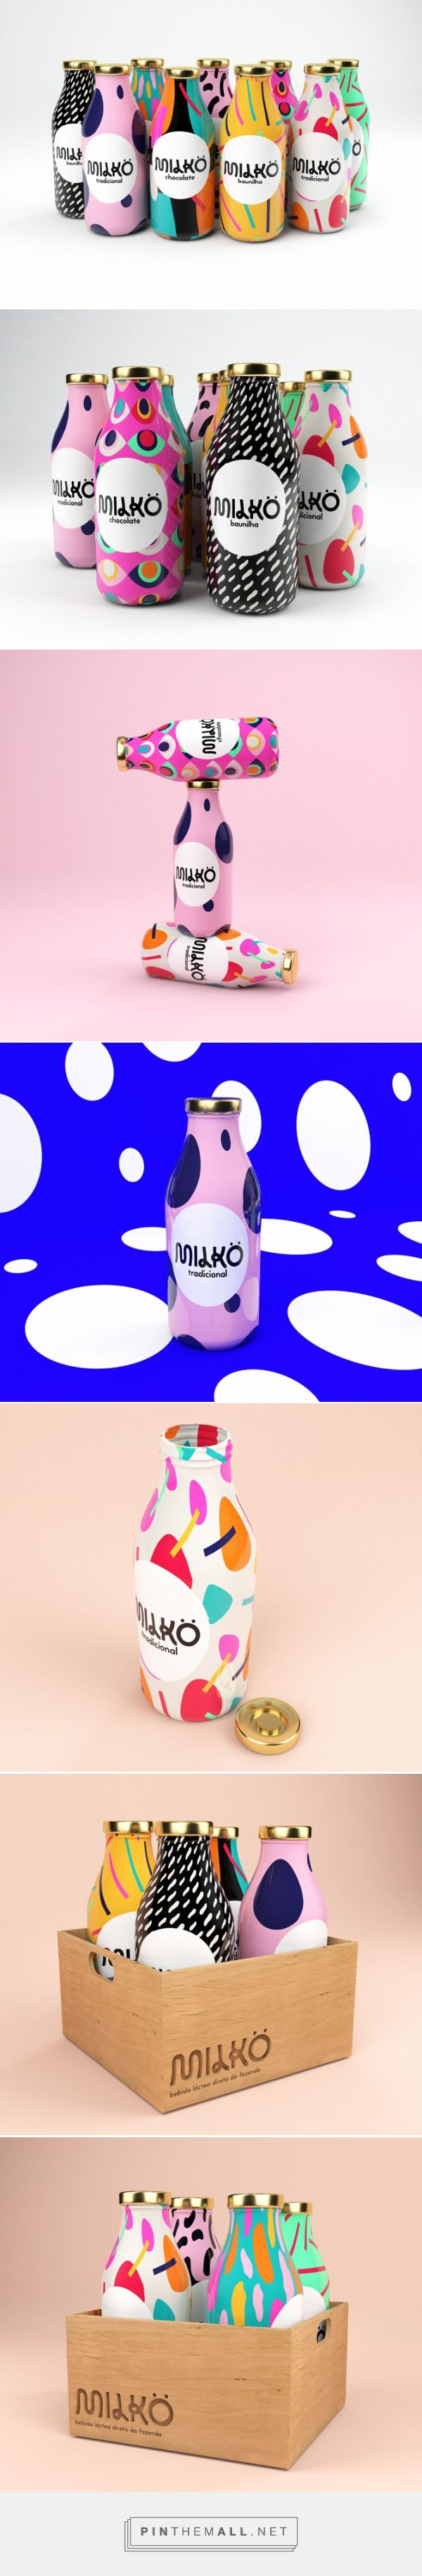 Milkö cold milk /project / by Giovani Flores